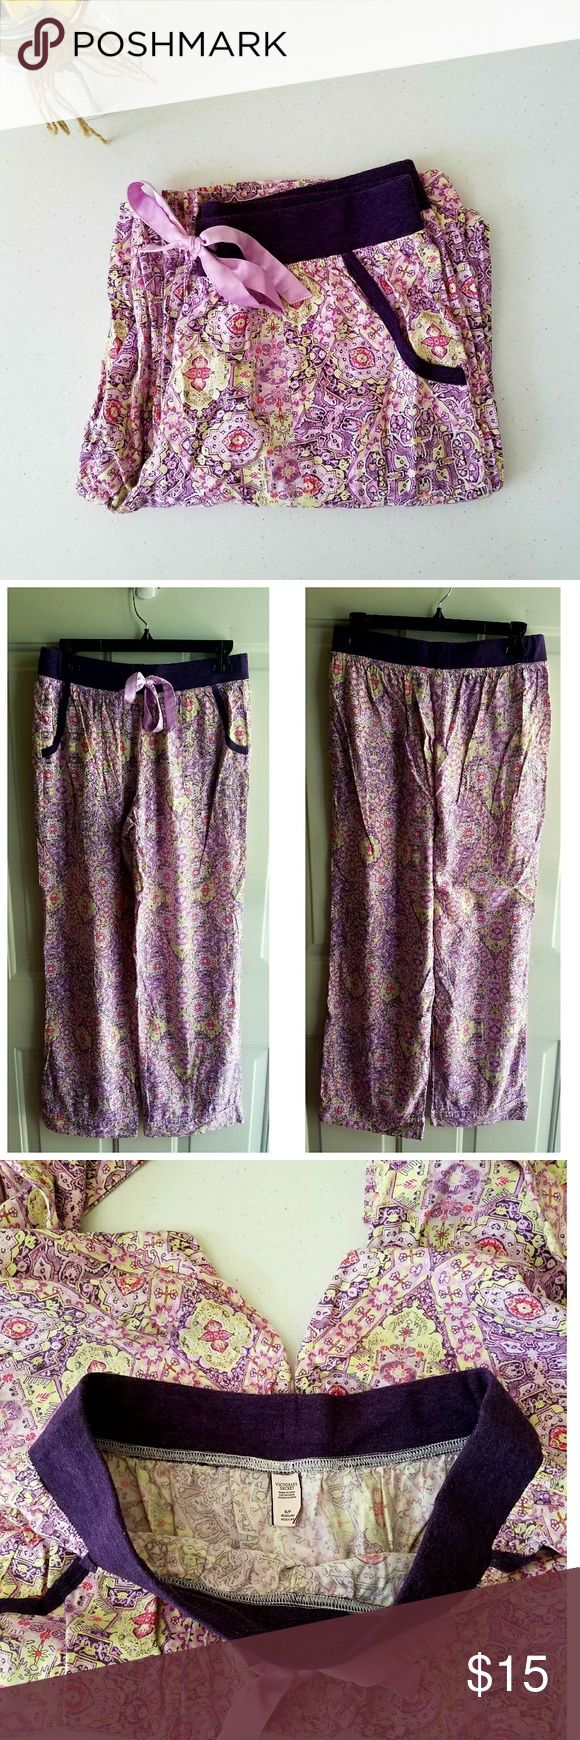 """Victoria Secret Sleep Pant Gently worn. Lite weight PJ pants with adjustable ribbon tie waist. Purple with pink, yellow, and white. Has pockets. Wide leg bottoms.  Minor flaw: Small rip in the material on the inside of the waist band see last photo. Price reflects flaw. 56% cotton and 44% modal. Machine wash.  Measurements  Length 39""""  Inseam 29.5""""  Waist 26"""" - 27""""  Hip 36.5"""" - 37.5""""  Thigh 21.25"""" - 22"""" Victoria's Secret Intimates & Sleepwear Pajamas"""